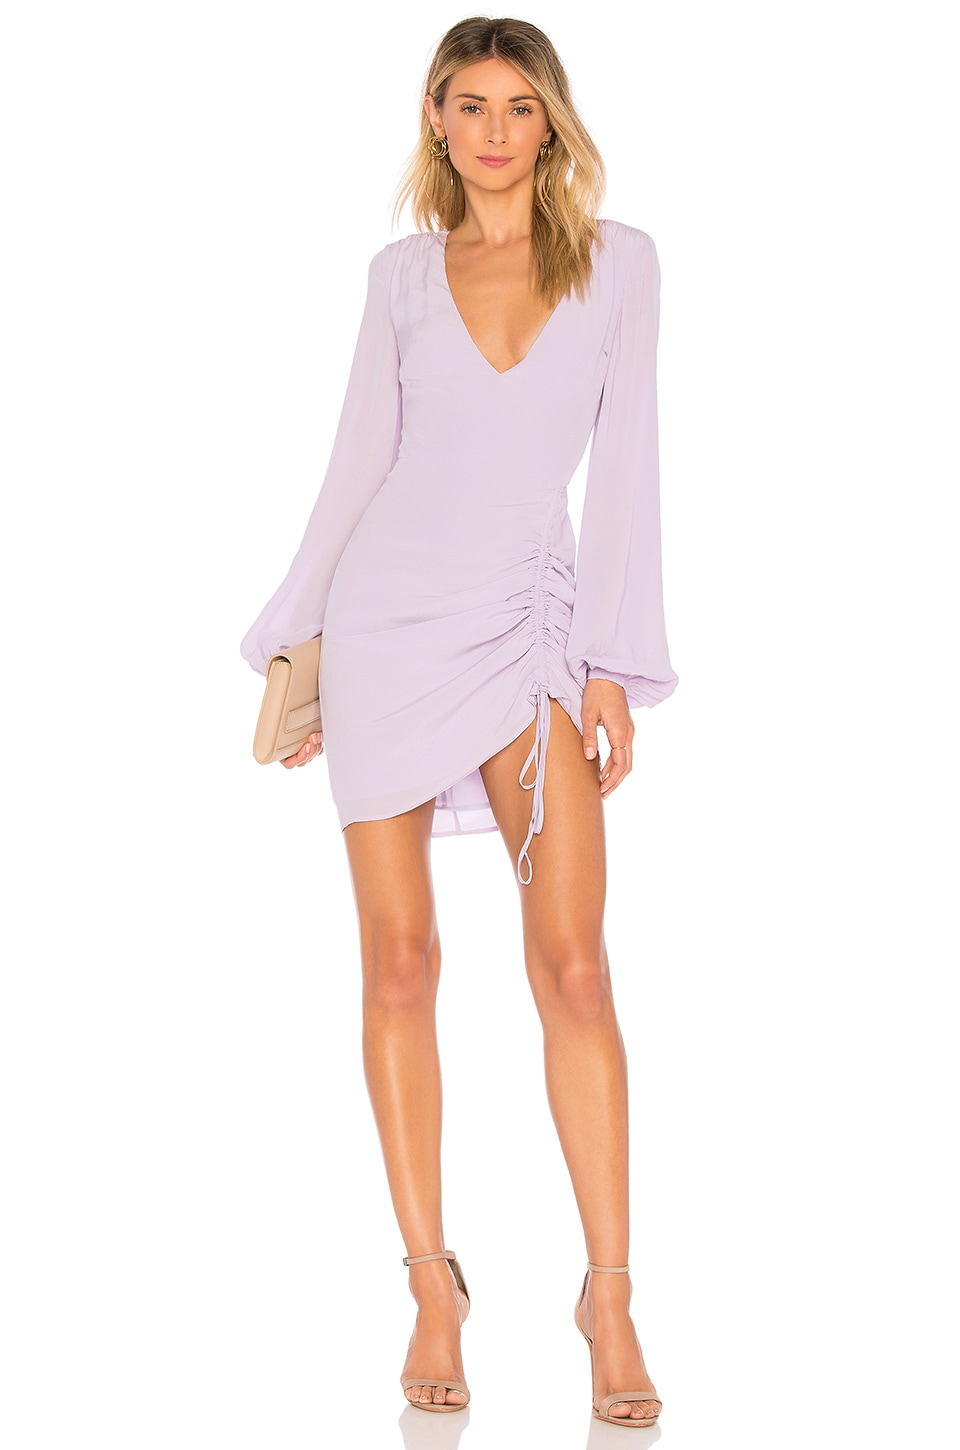 L'Academie The Pearl Dress in Lilac